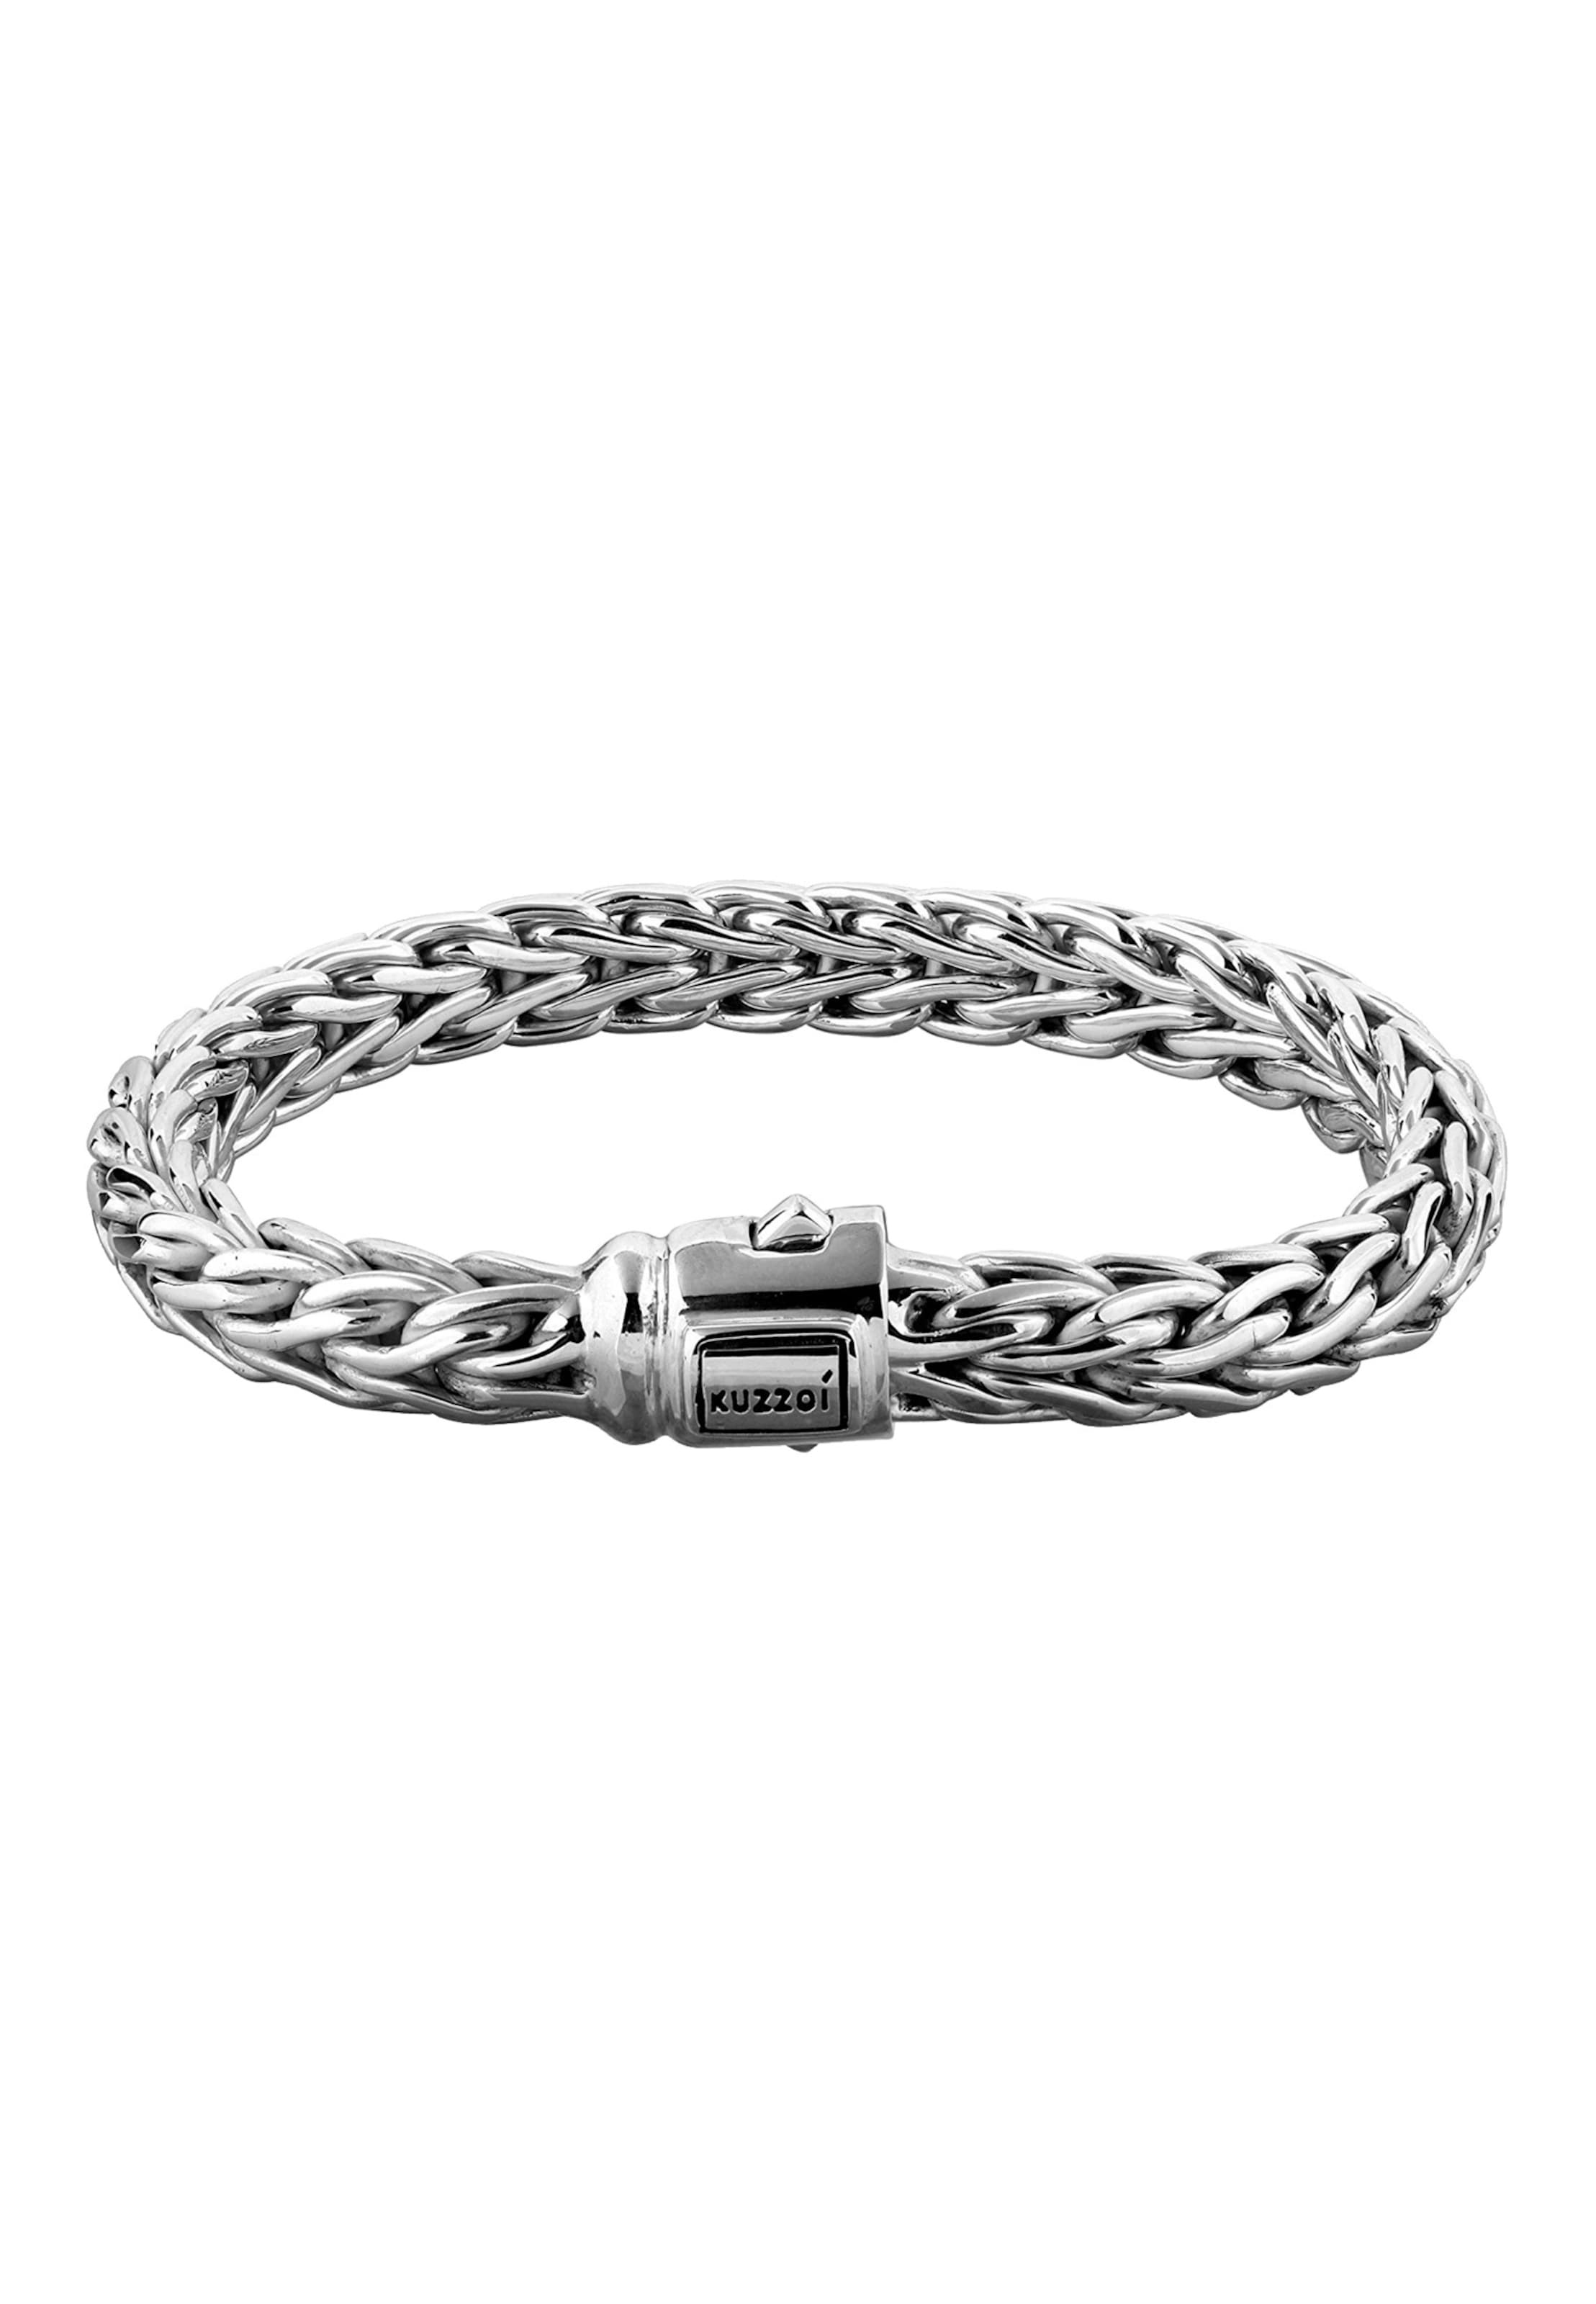 In 'twisted' Silber Kuzzoi Armband zSVpUqM